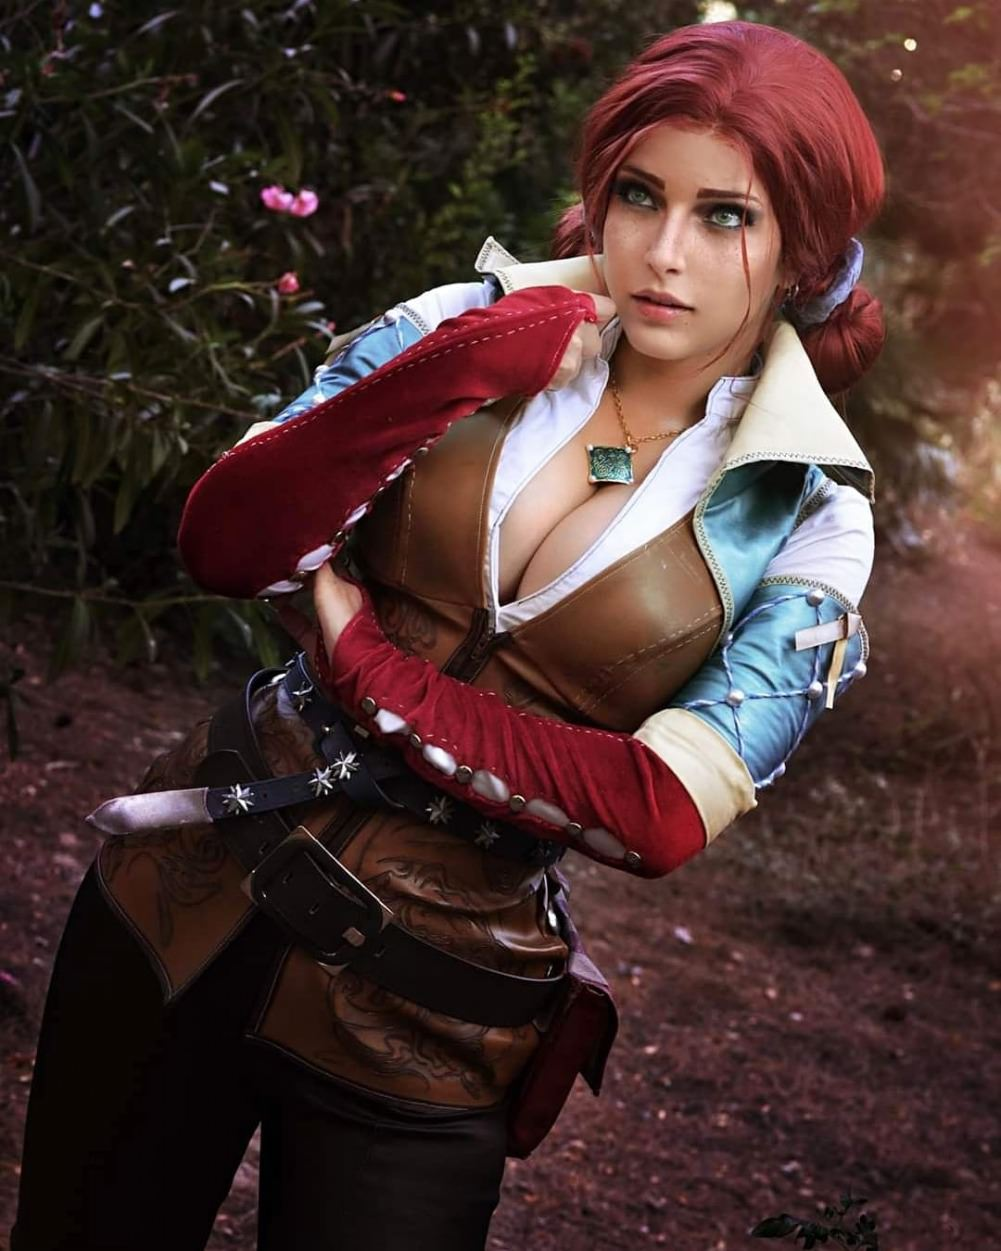 Shermie Cosplay as Triss Merigold